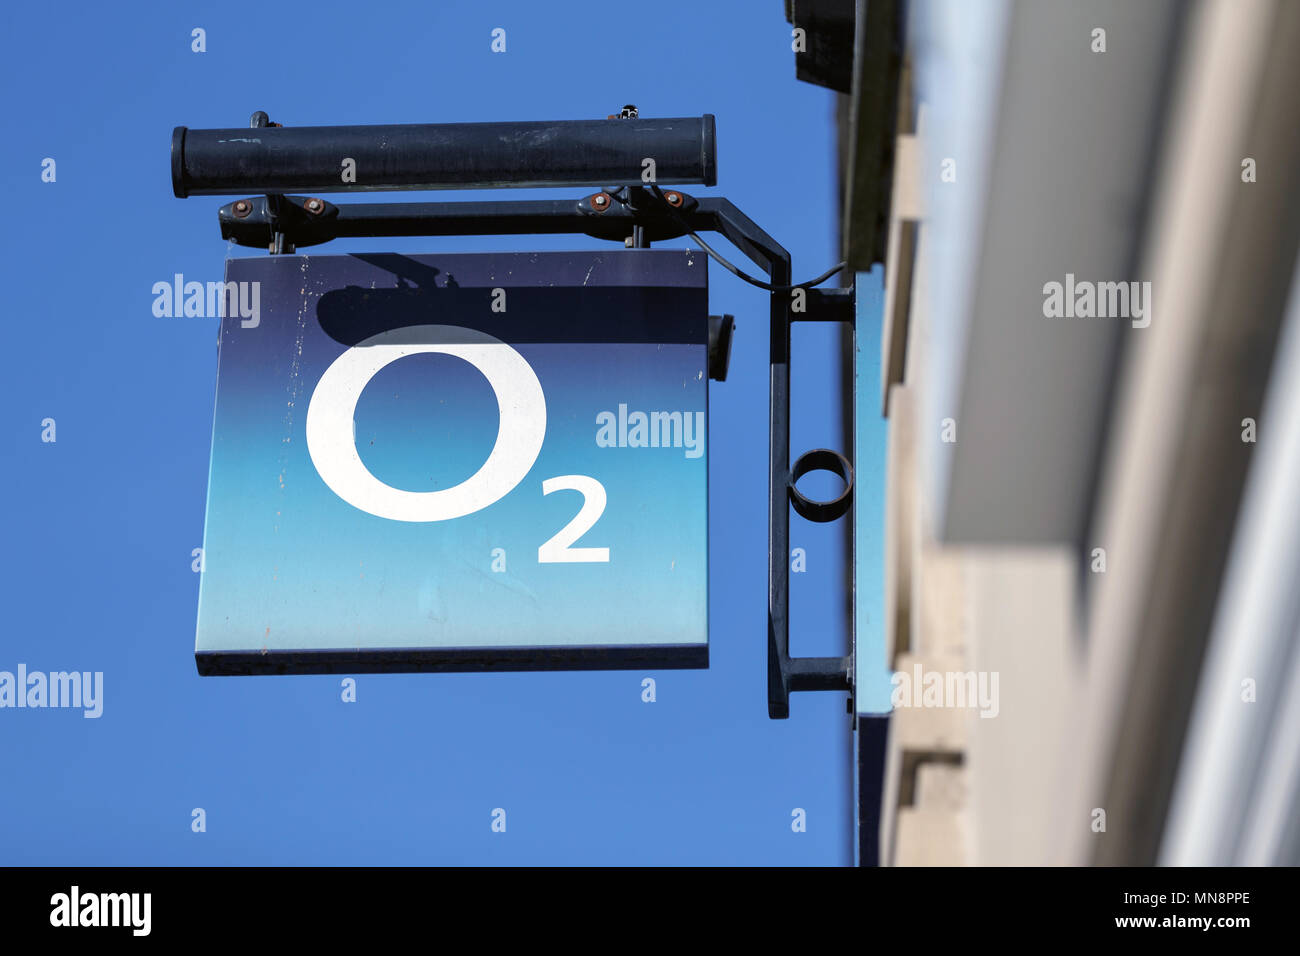 A branch of mobile phone and communications provider O2 in the United Kingdom, O2 logo. - Stock Image